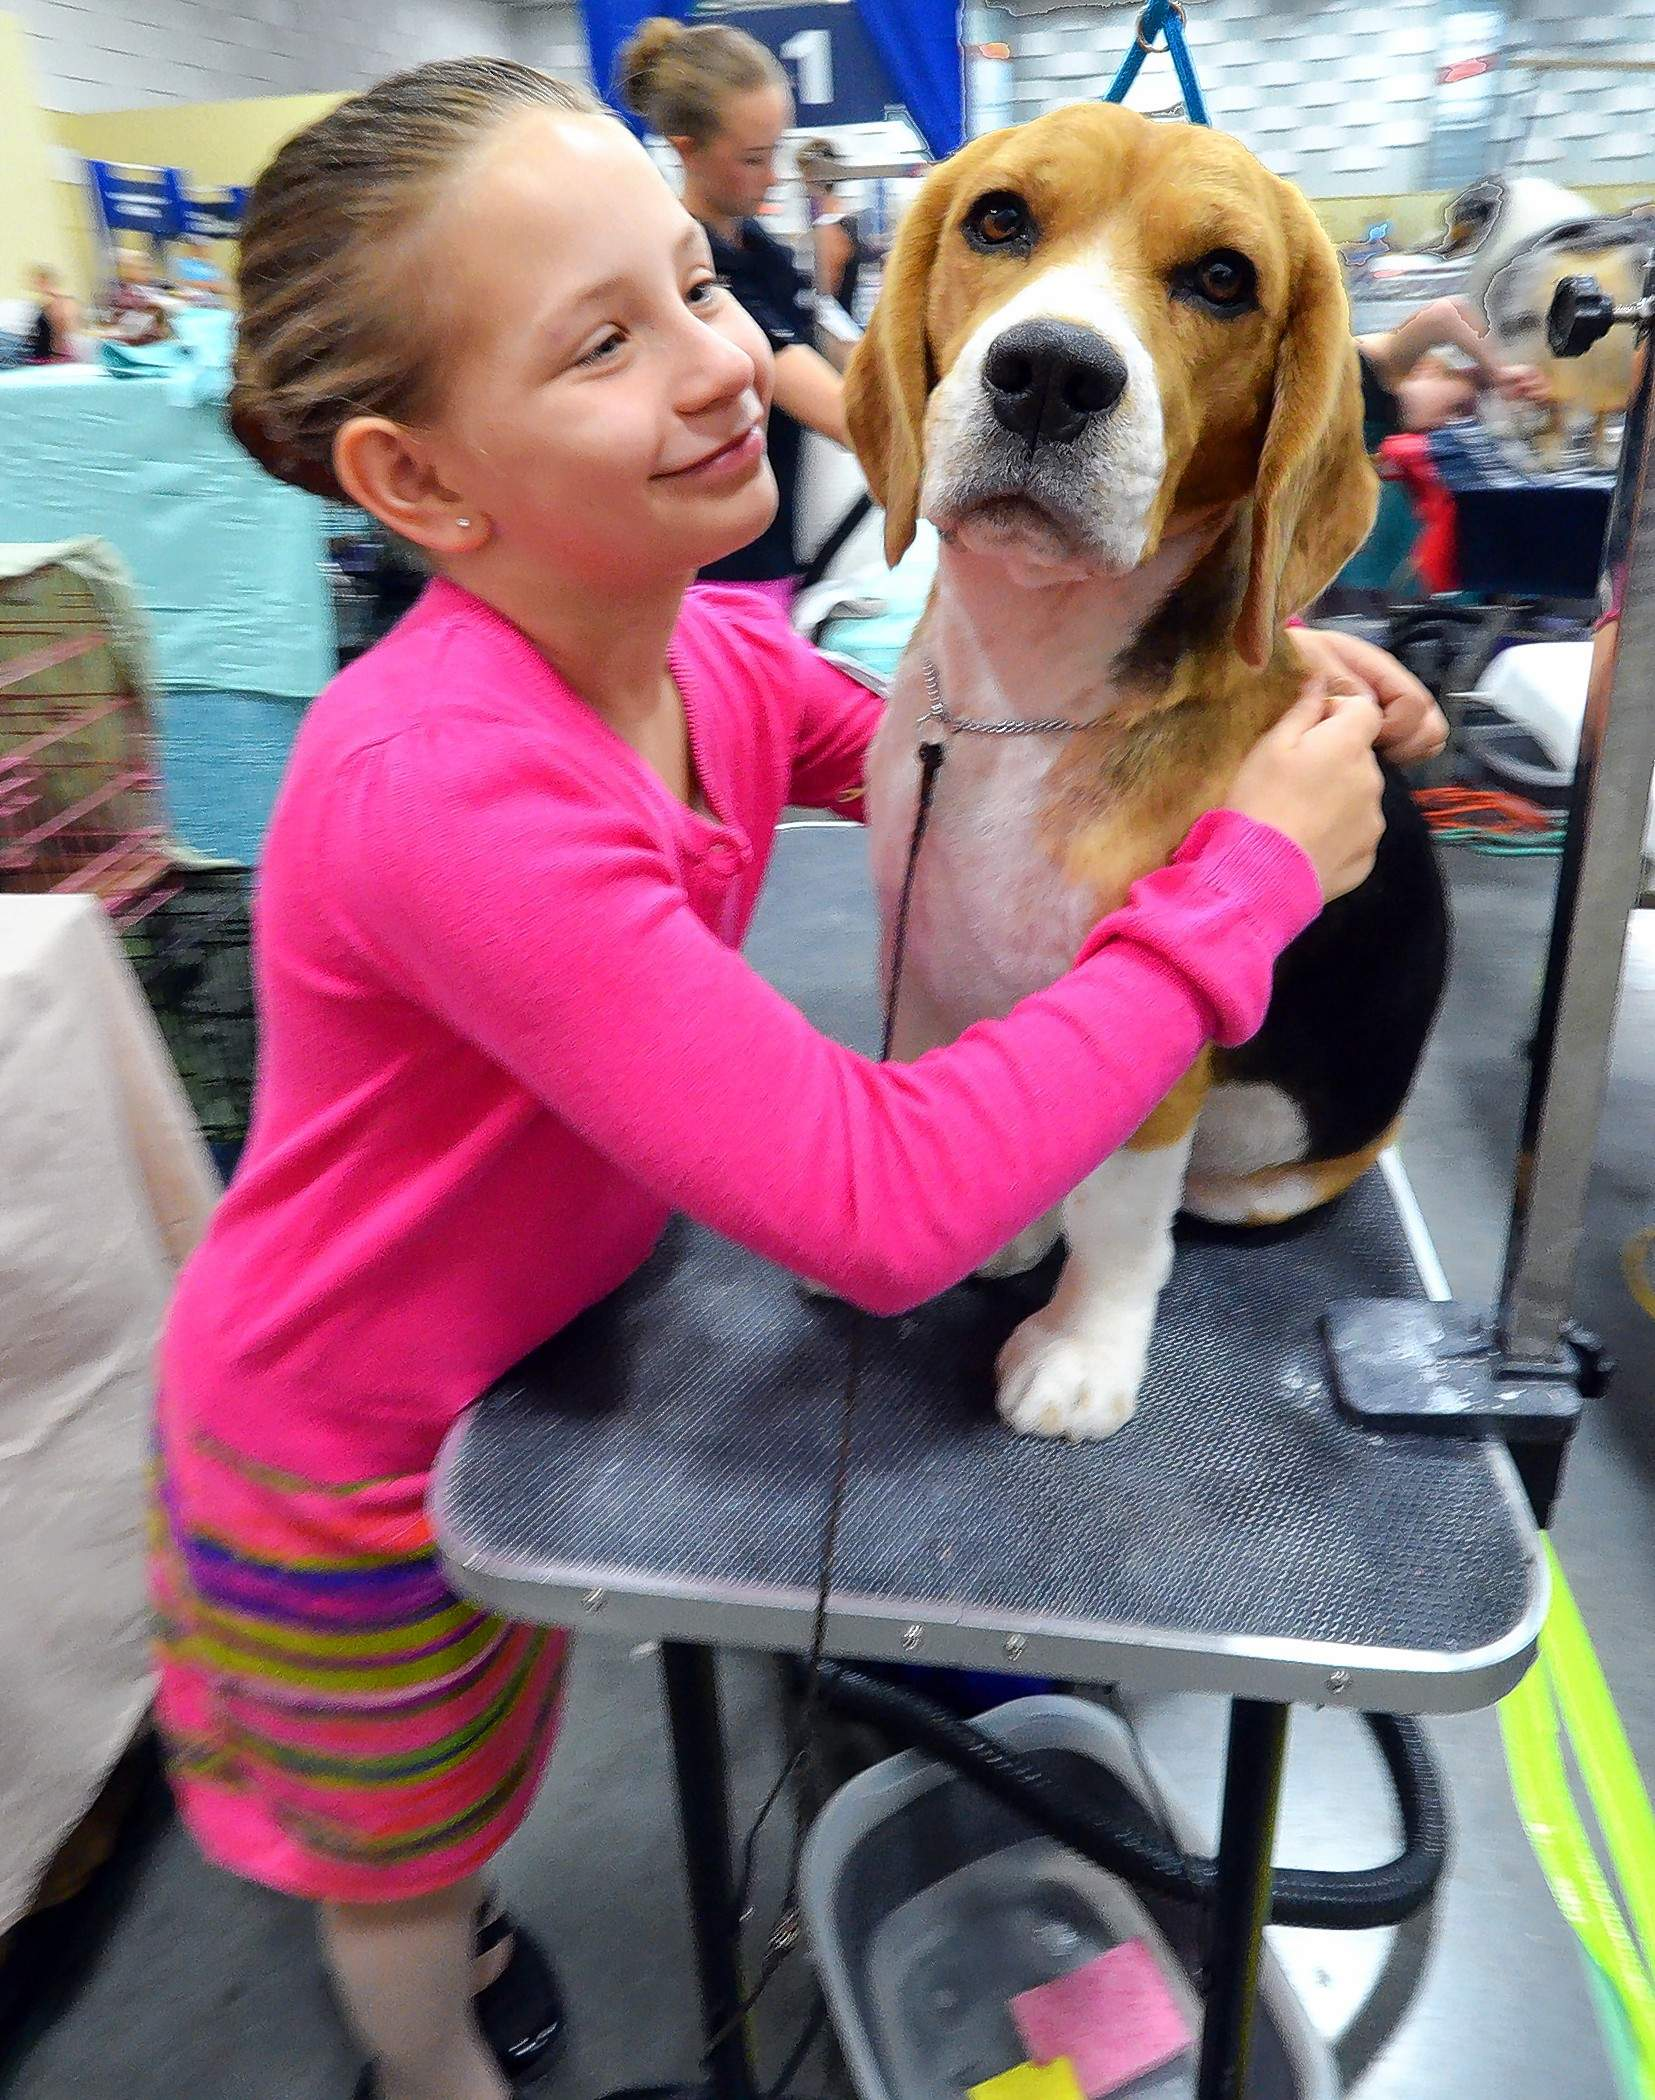 Payton Hickman from House Springs, Mo., and the family's beagle, Noah, enjoy the 2017 AKC show in Marion.